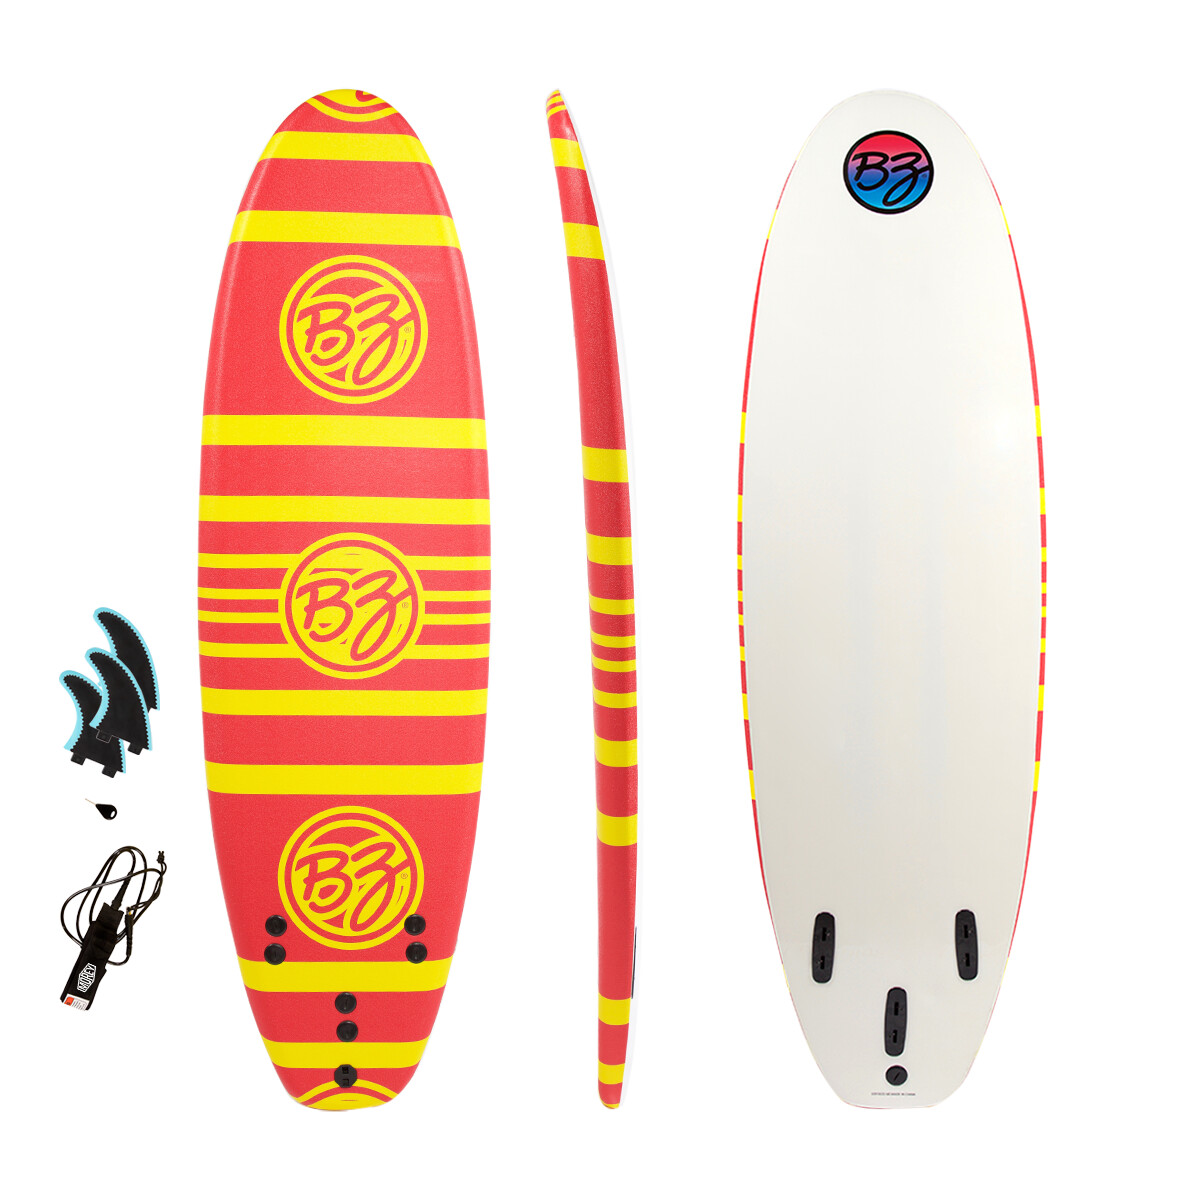 BZ 6' Soft Top Surfboard